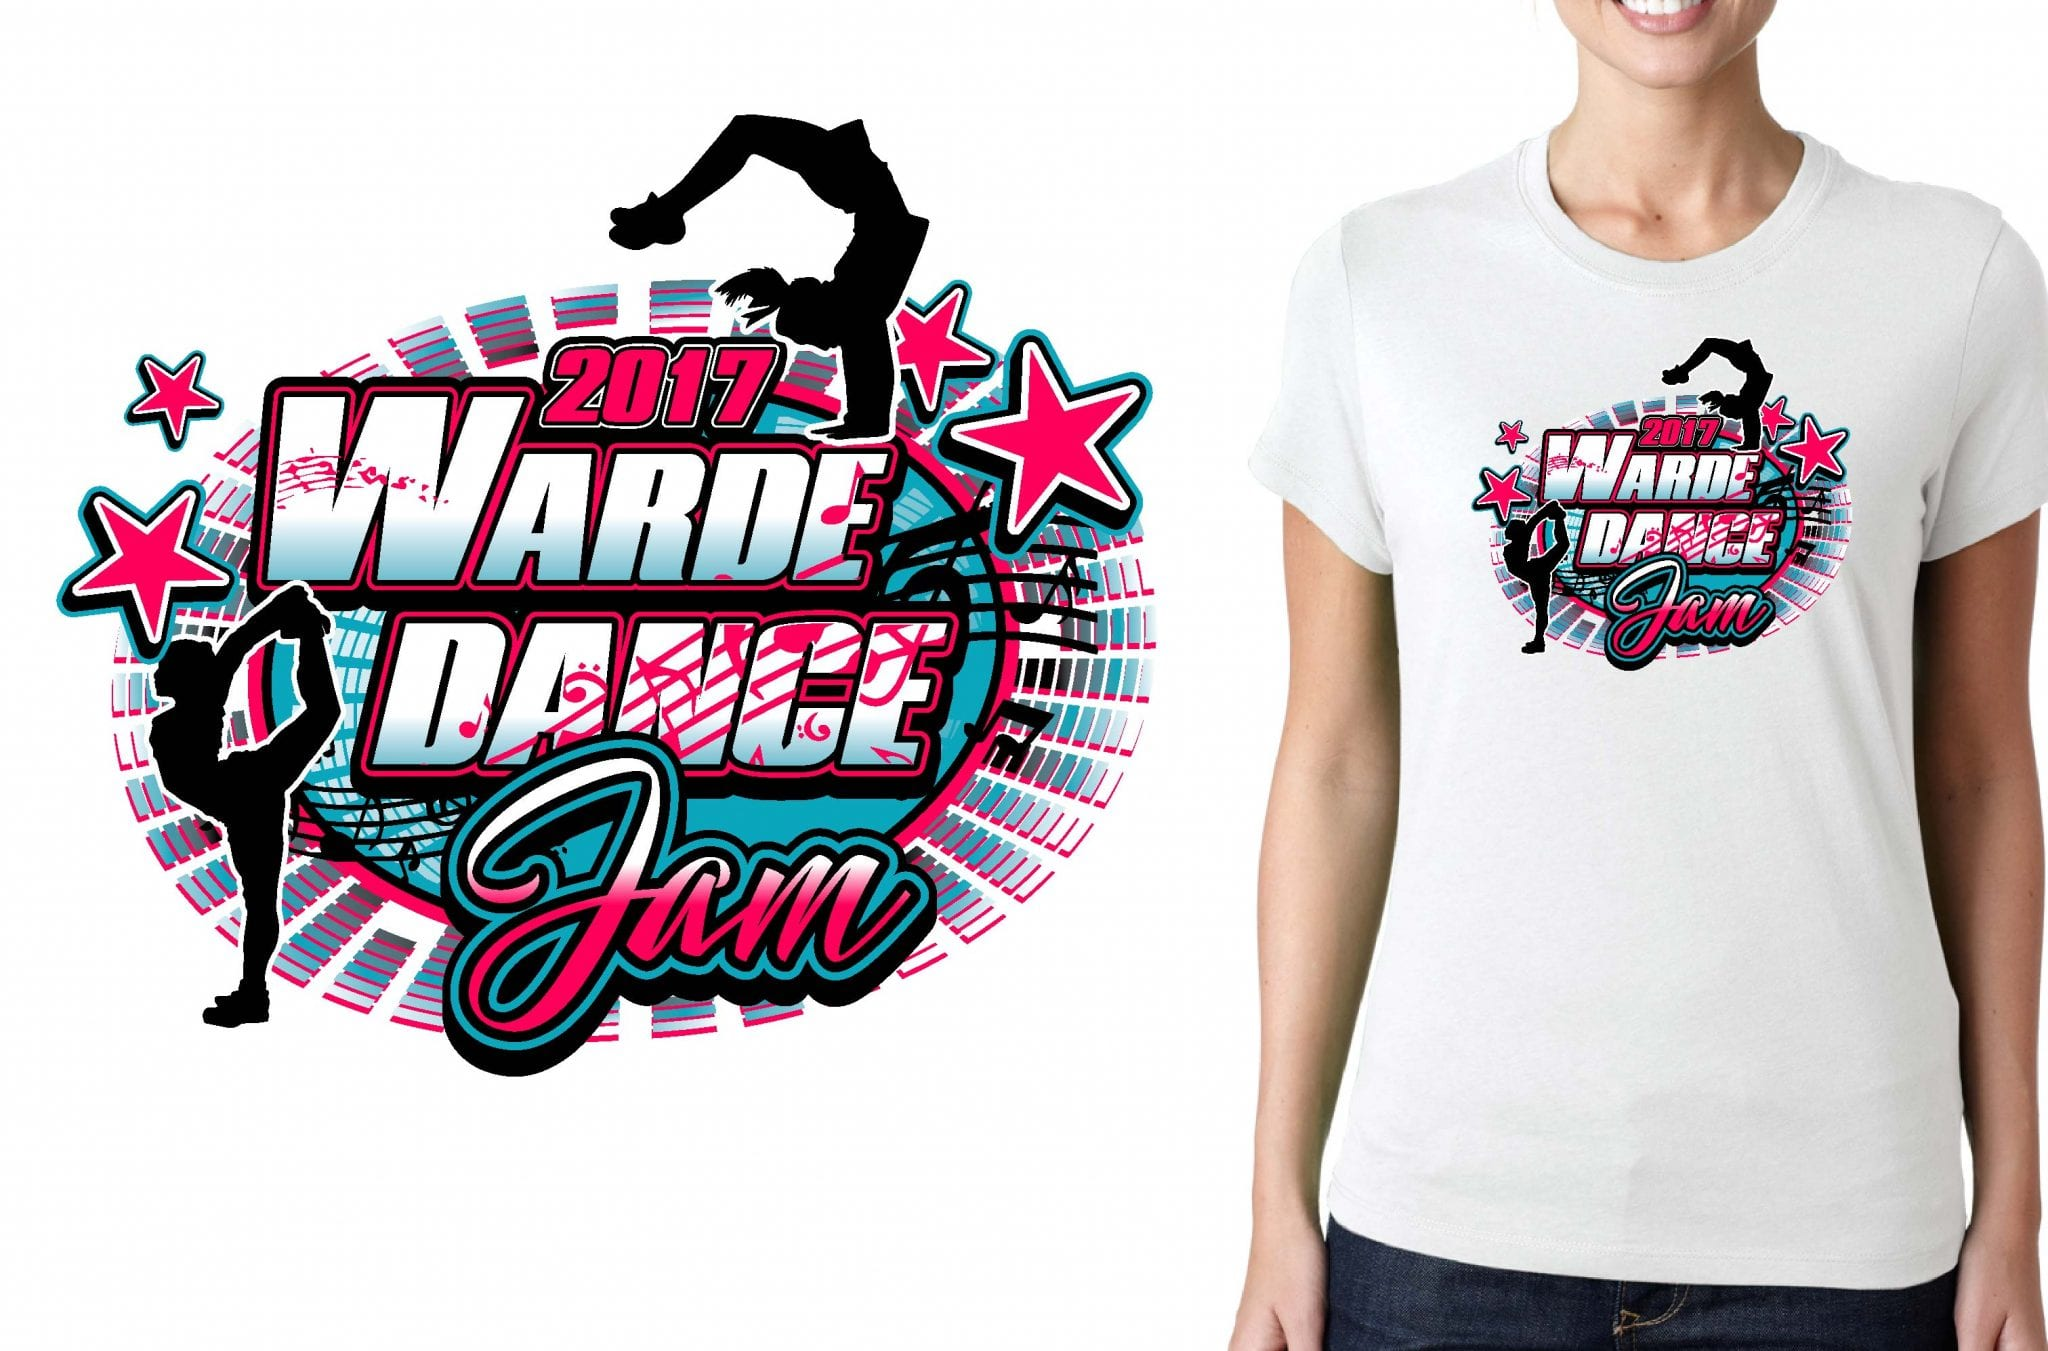 CHEER T SHIRT LOGO DESIGN Warde-Dance-Jam BY UrArtStudio